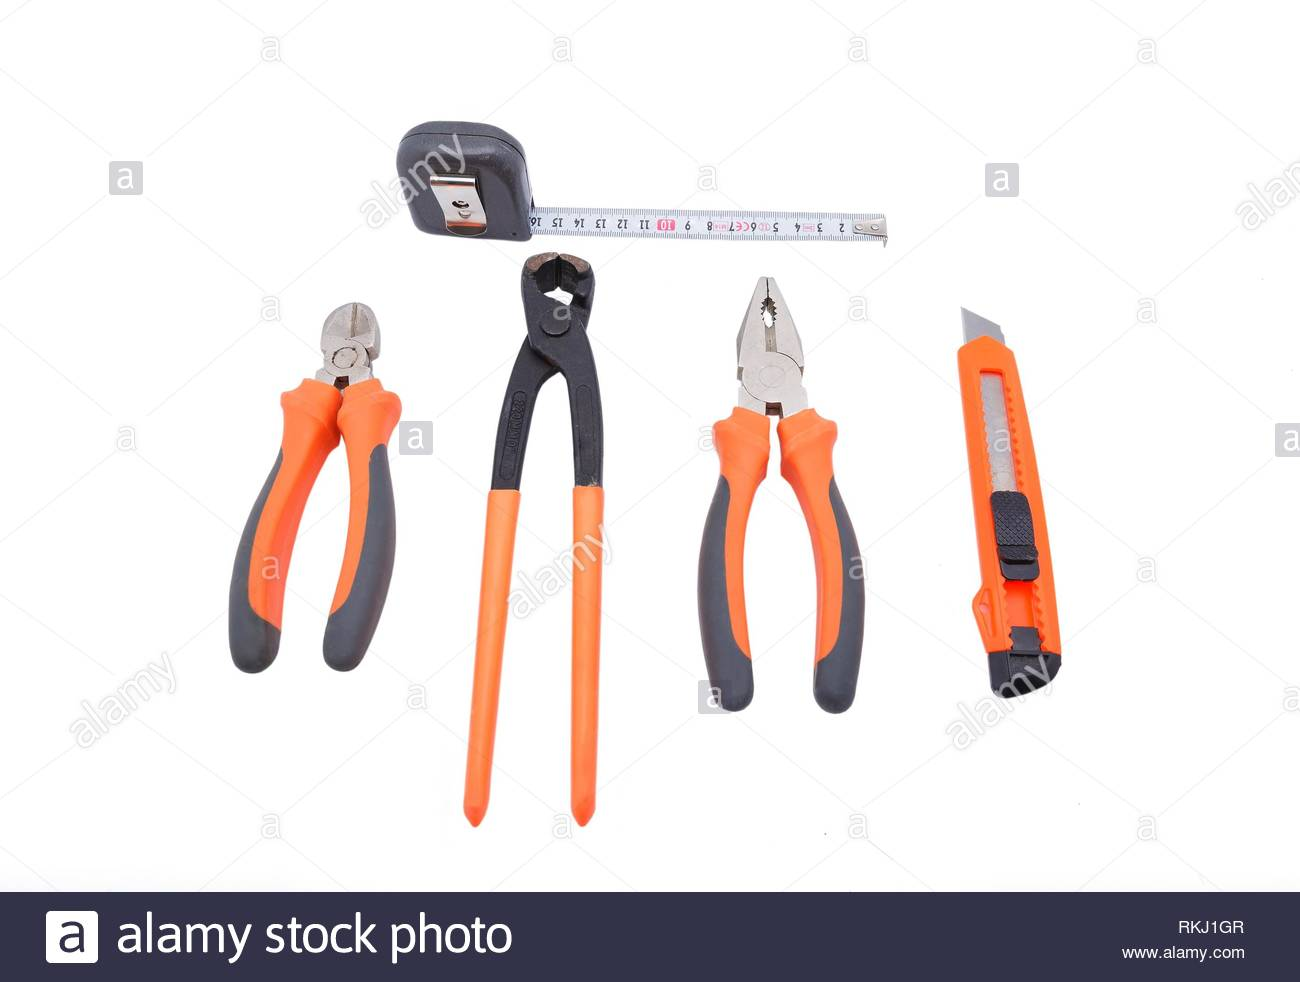 Set the tool on a white background. - Stock Image